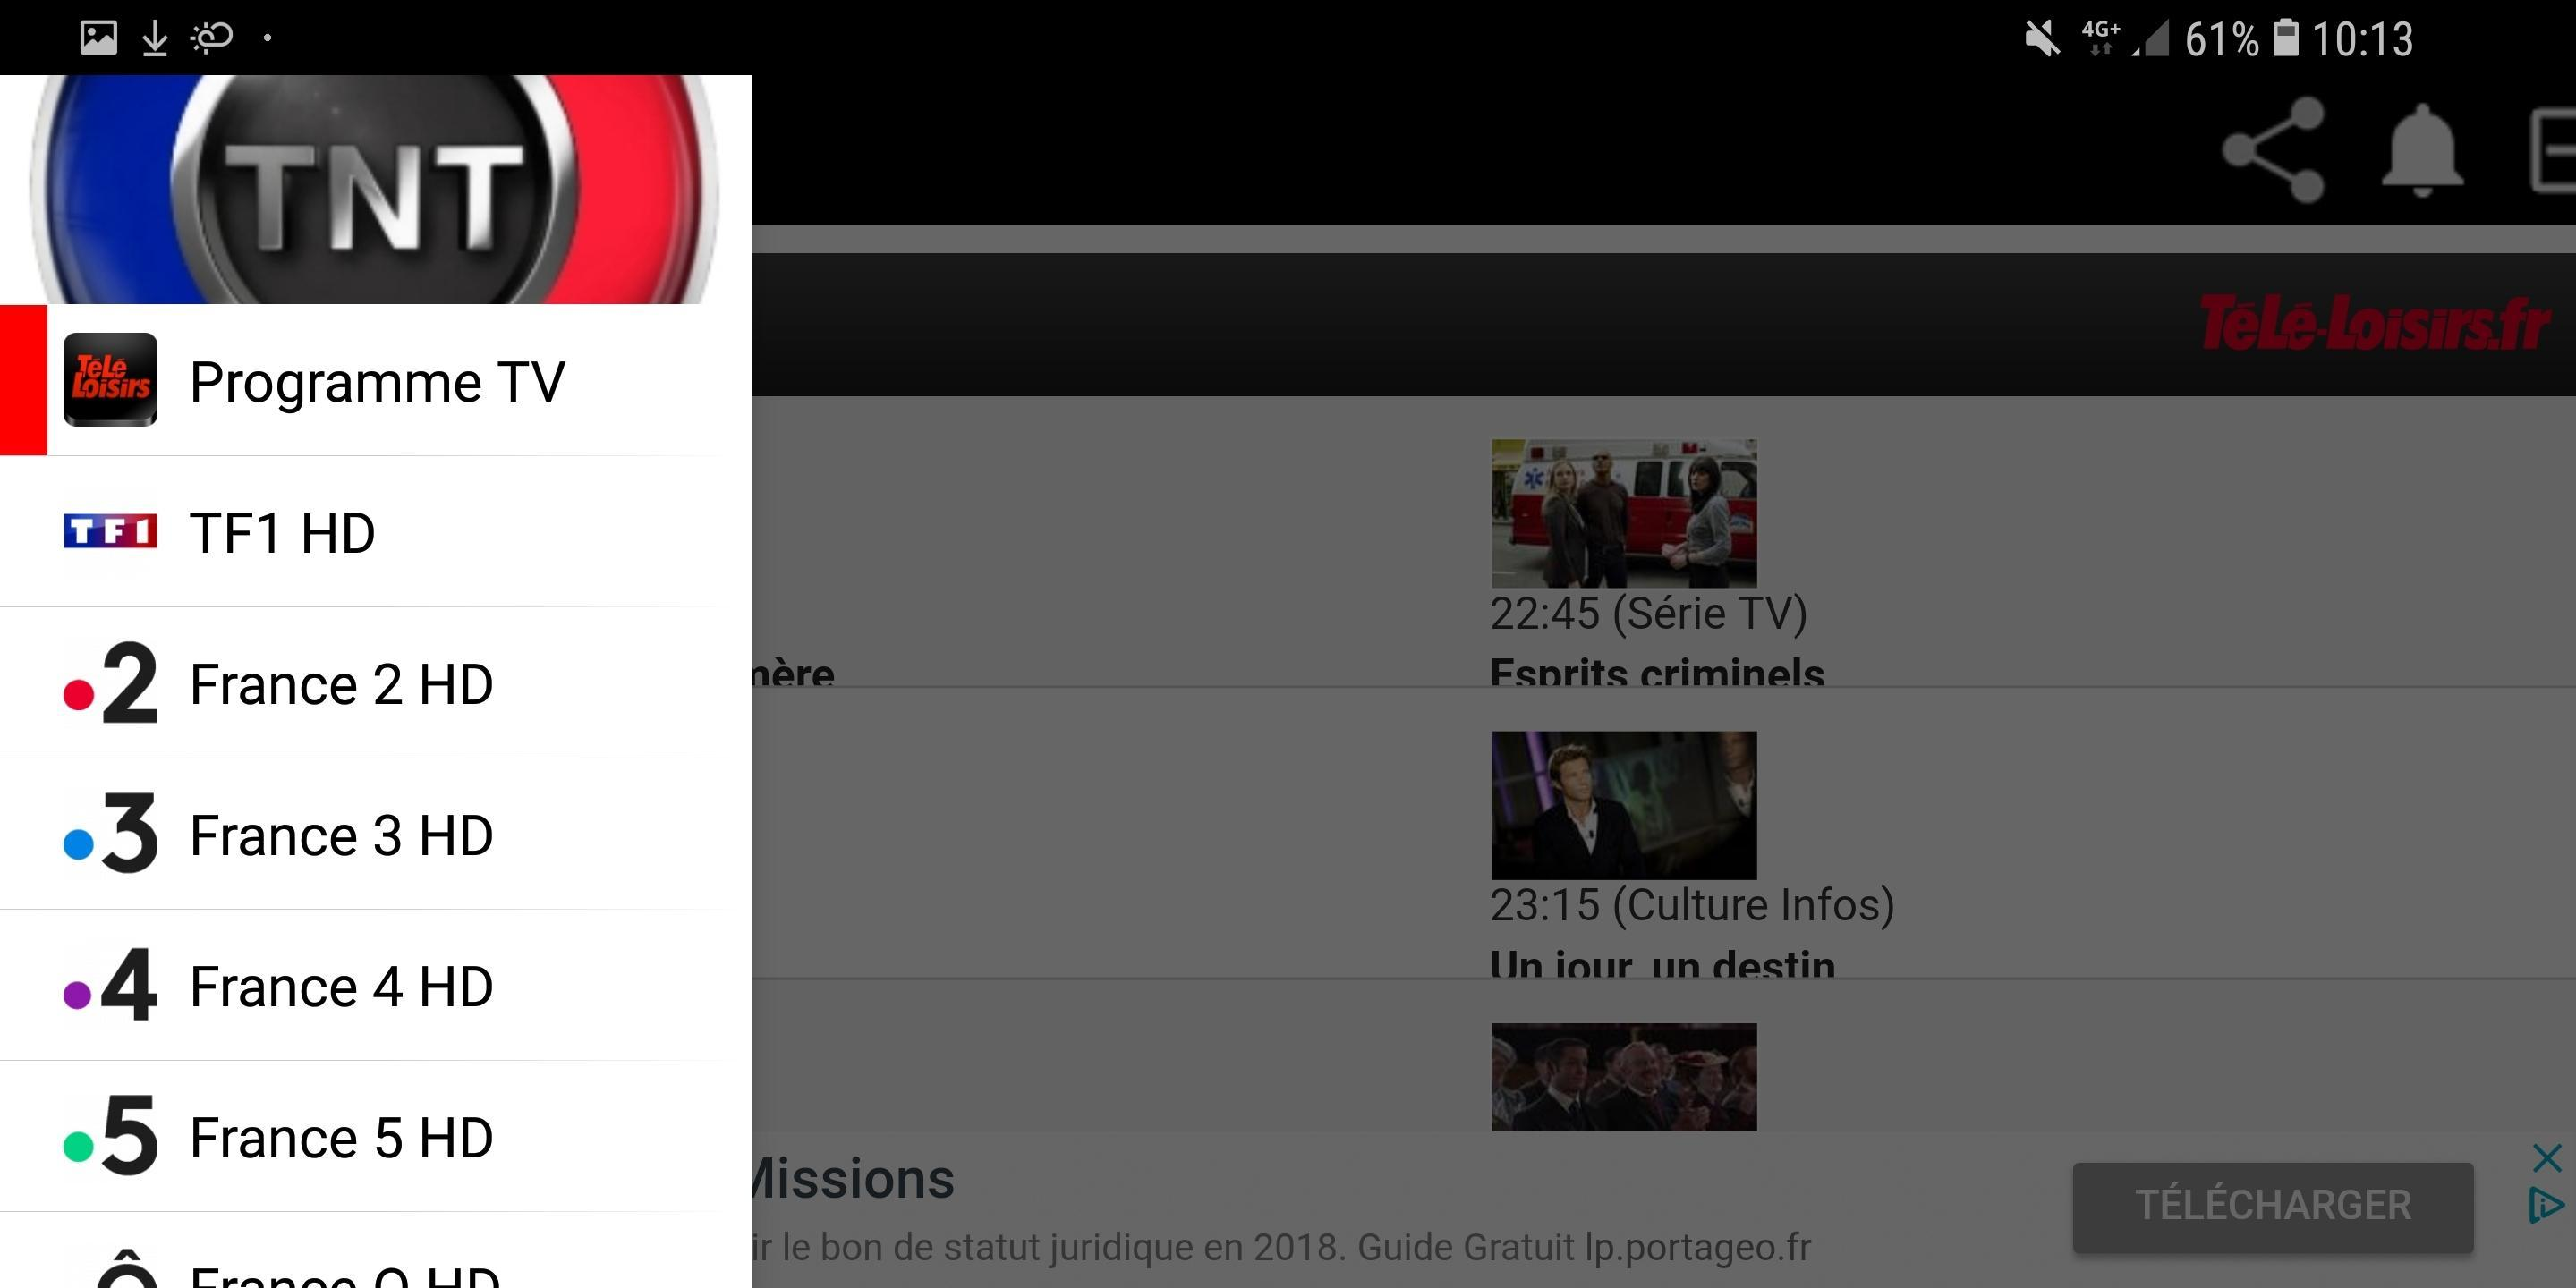 TNT France Web for Android - APK Download